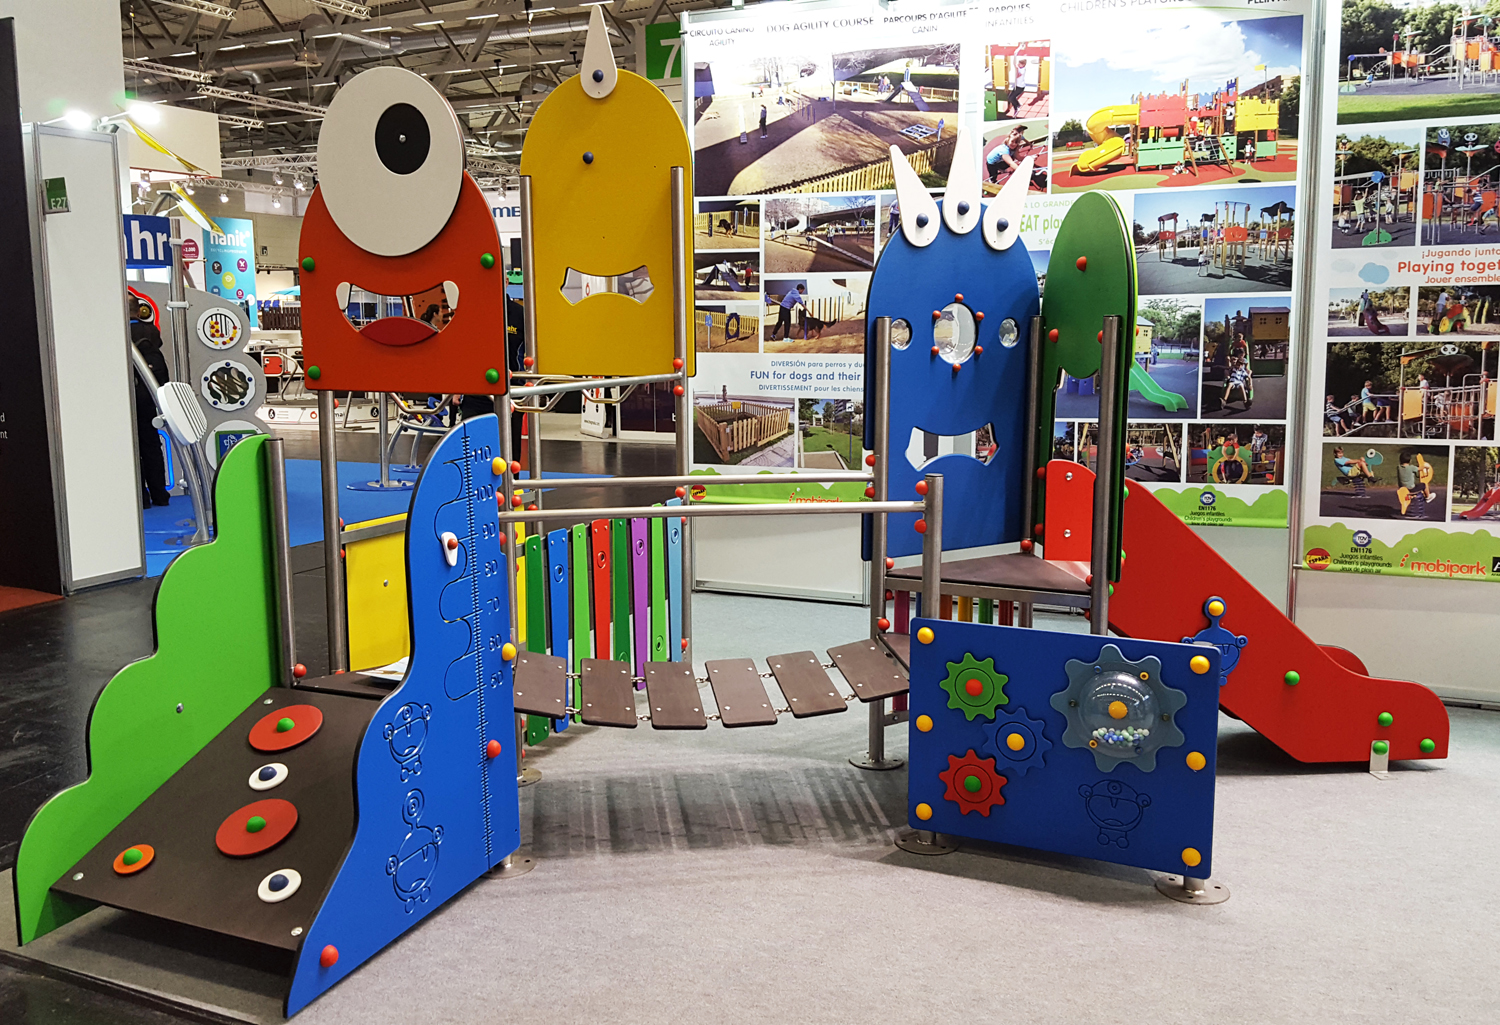 multi-activity play structure with monsters exposed at trade fair Tecma 2018